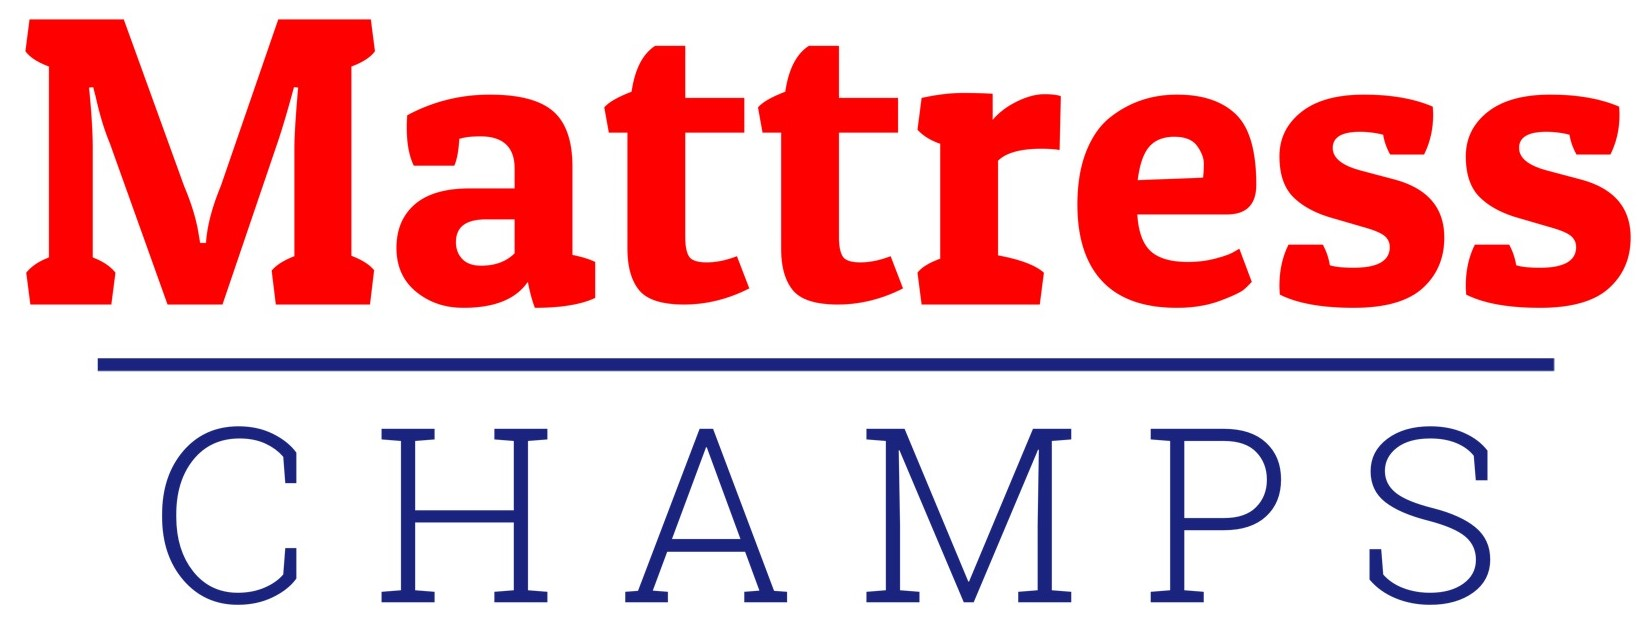 Mattress stores in Fayetteville, NC - Mattress Champs